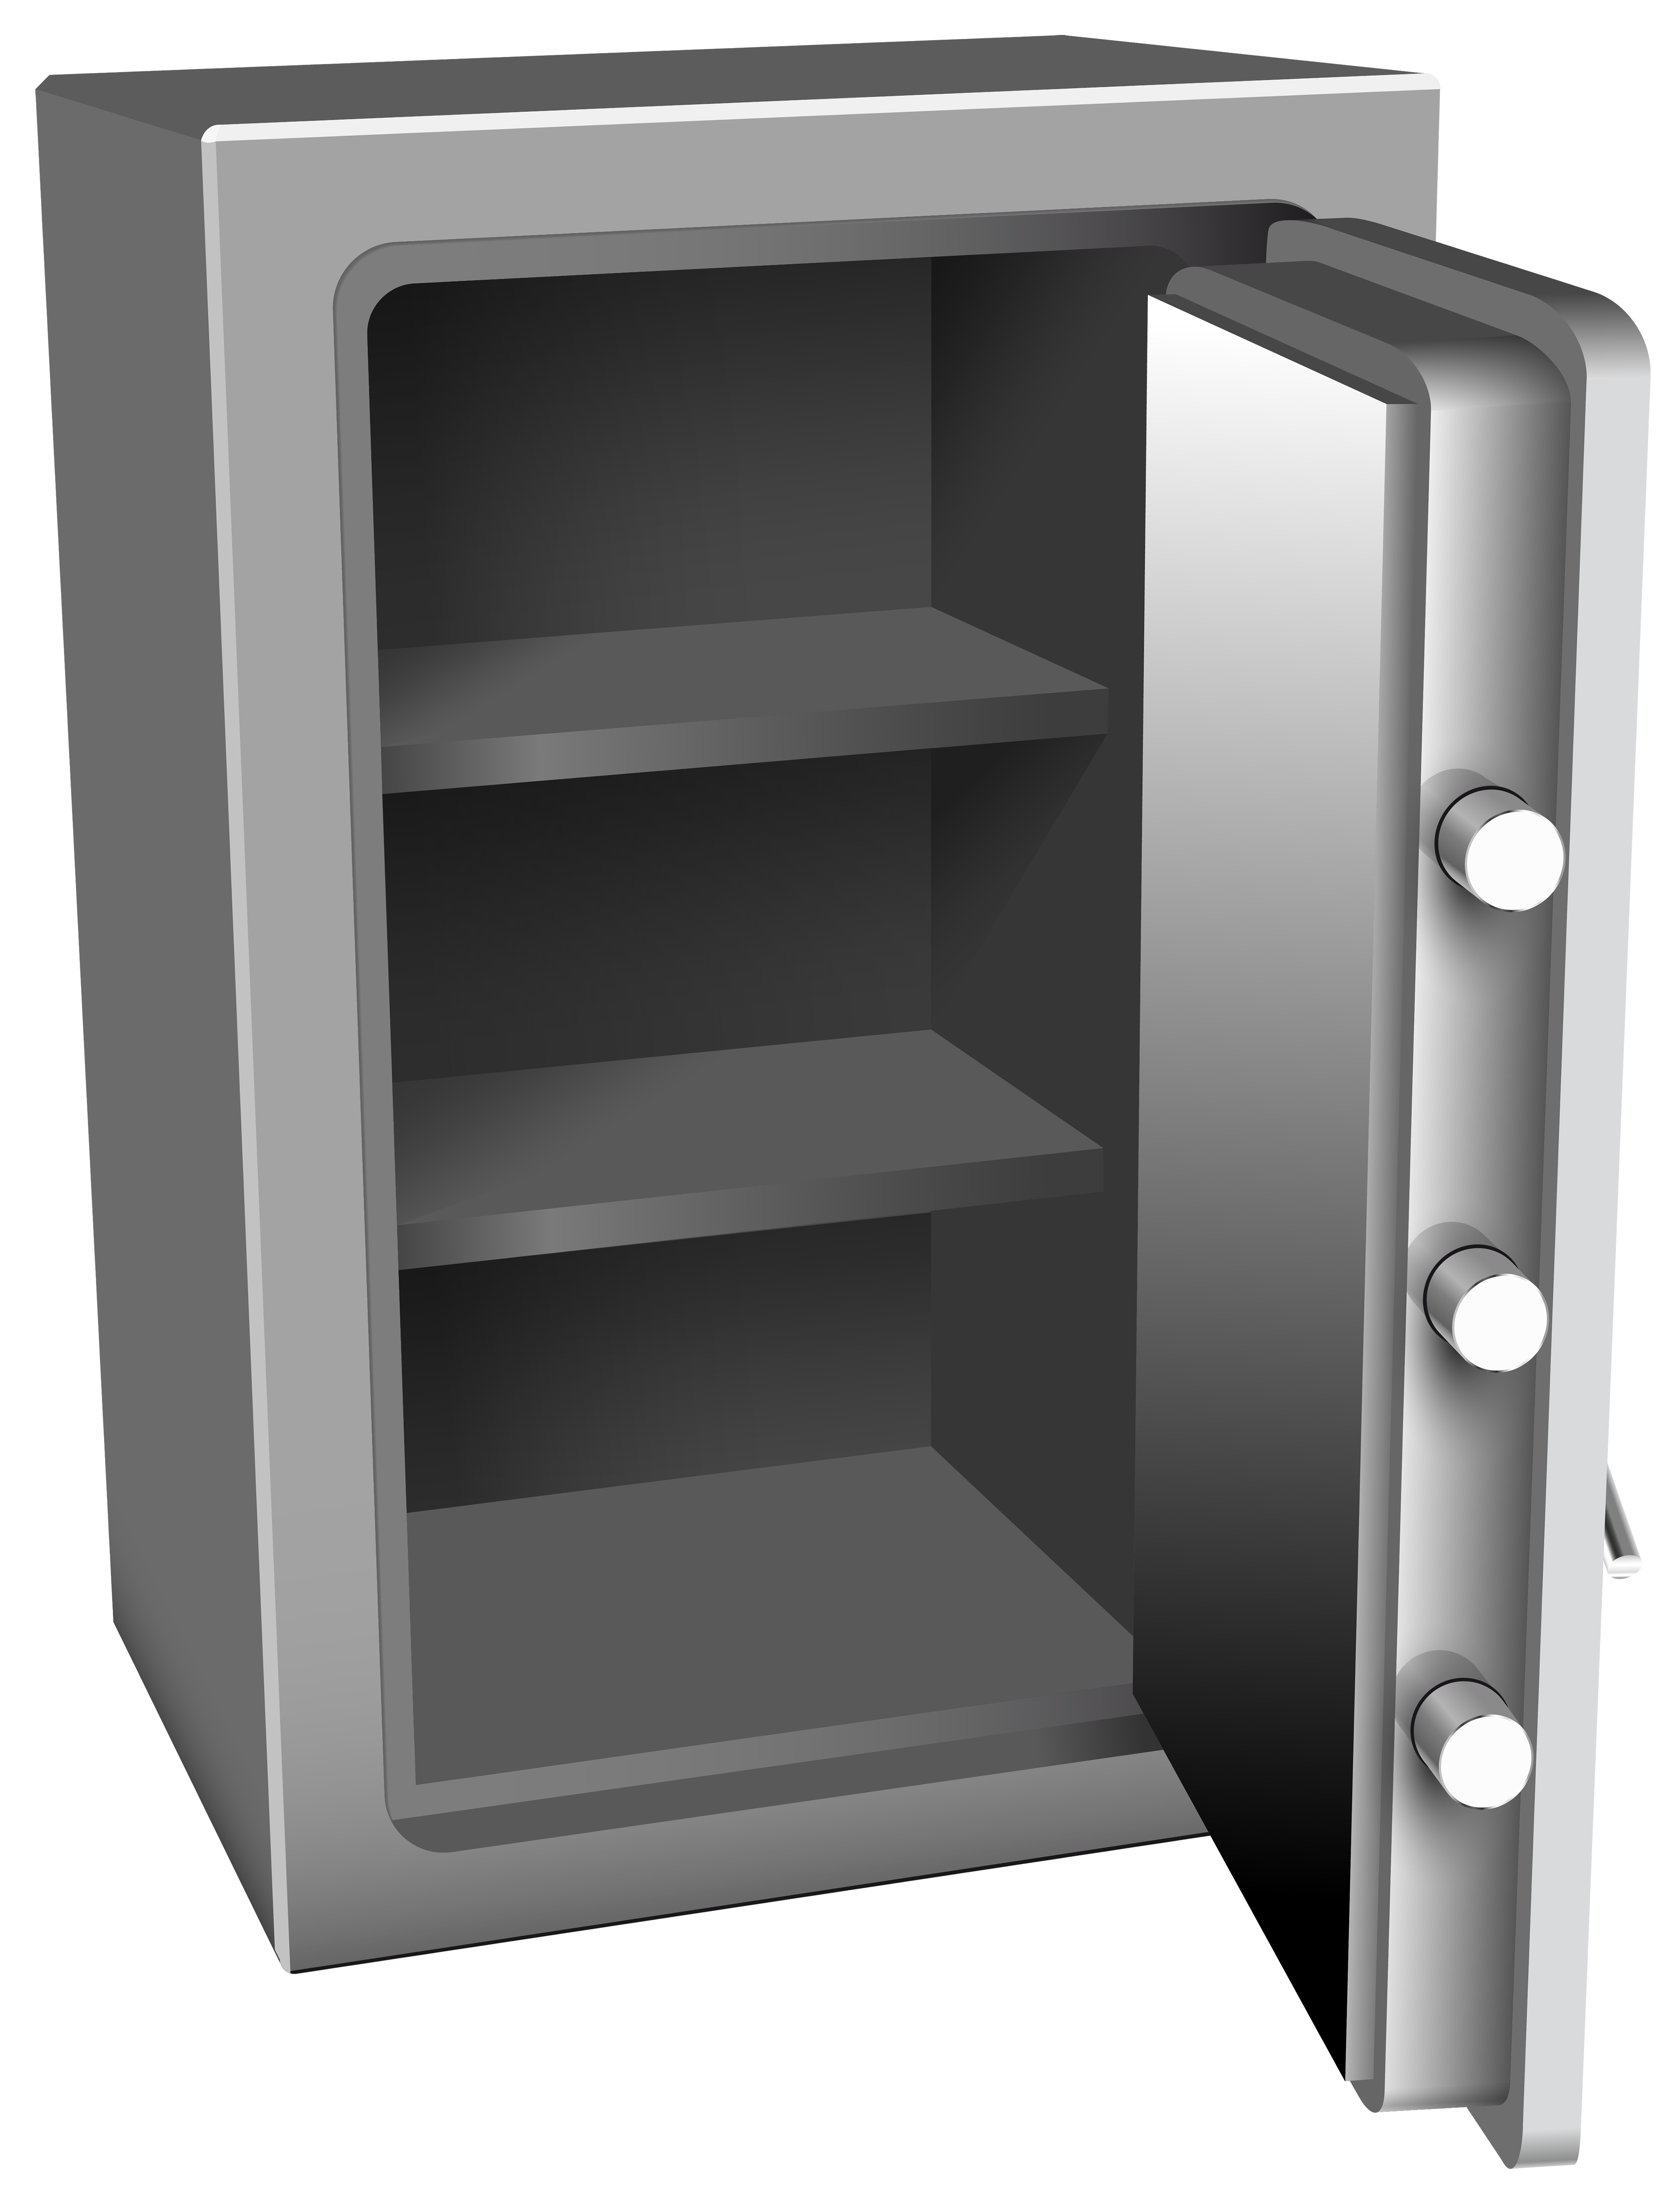 clip freeuse download Open silver png clip. Safe clipart.